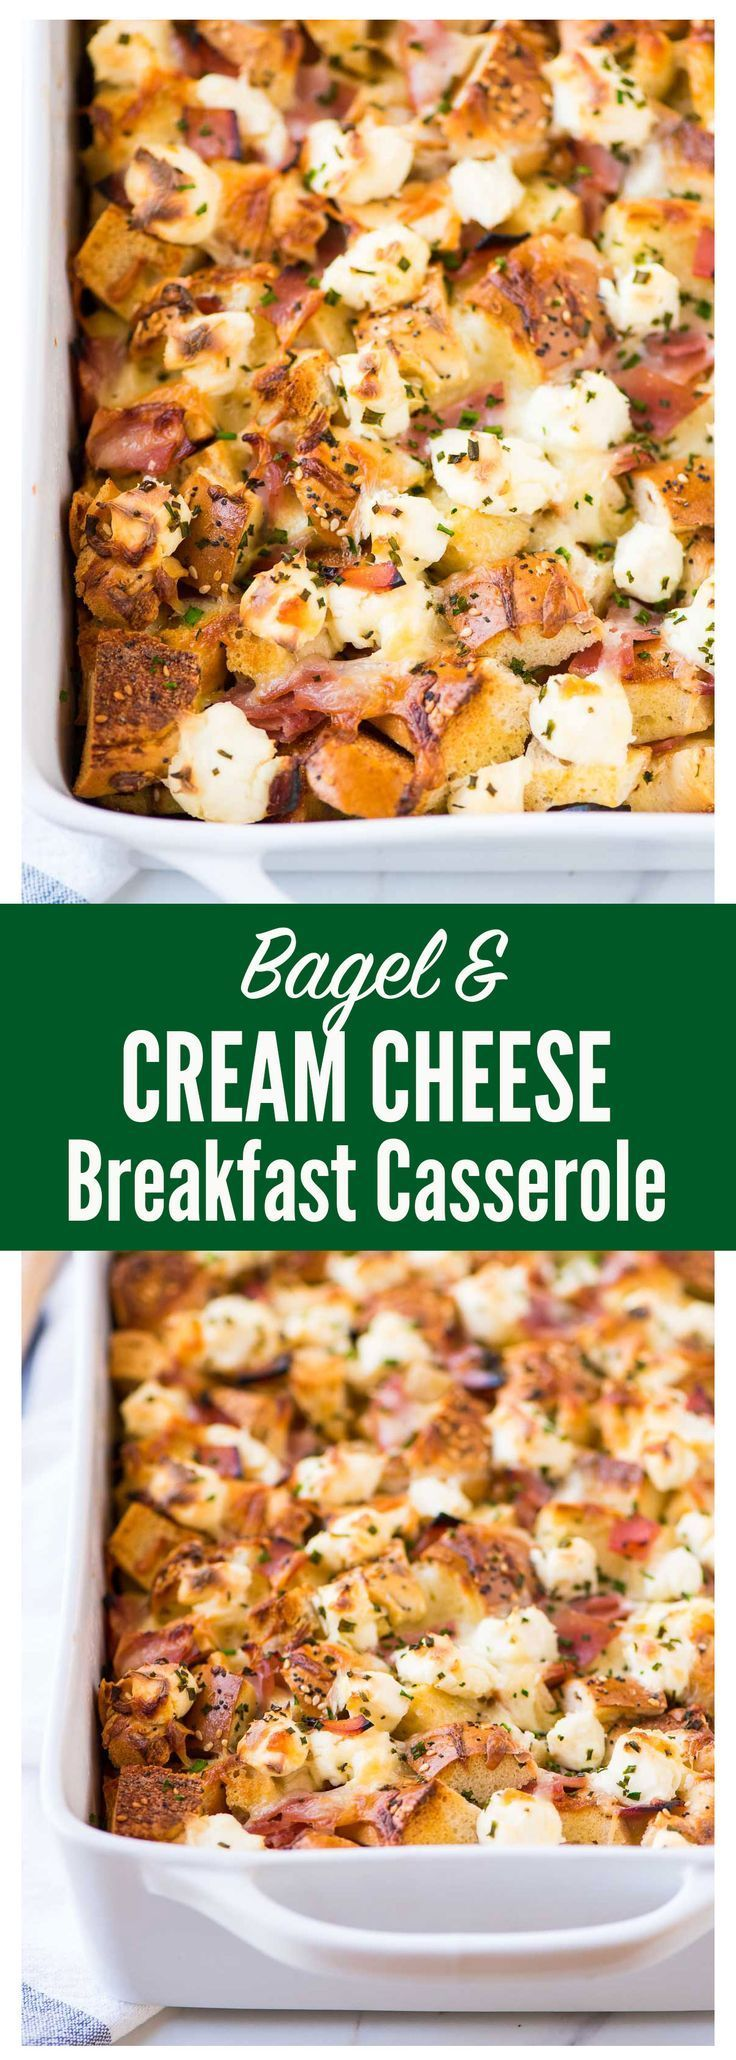 Everything Bagel and Cream Cheese Breakfast Casserole. Easy make-ahead breakfast recipe that's perfect for a crowd! Recipe at wellplated.com   @wellplated